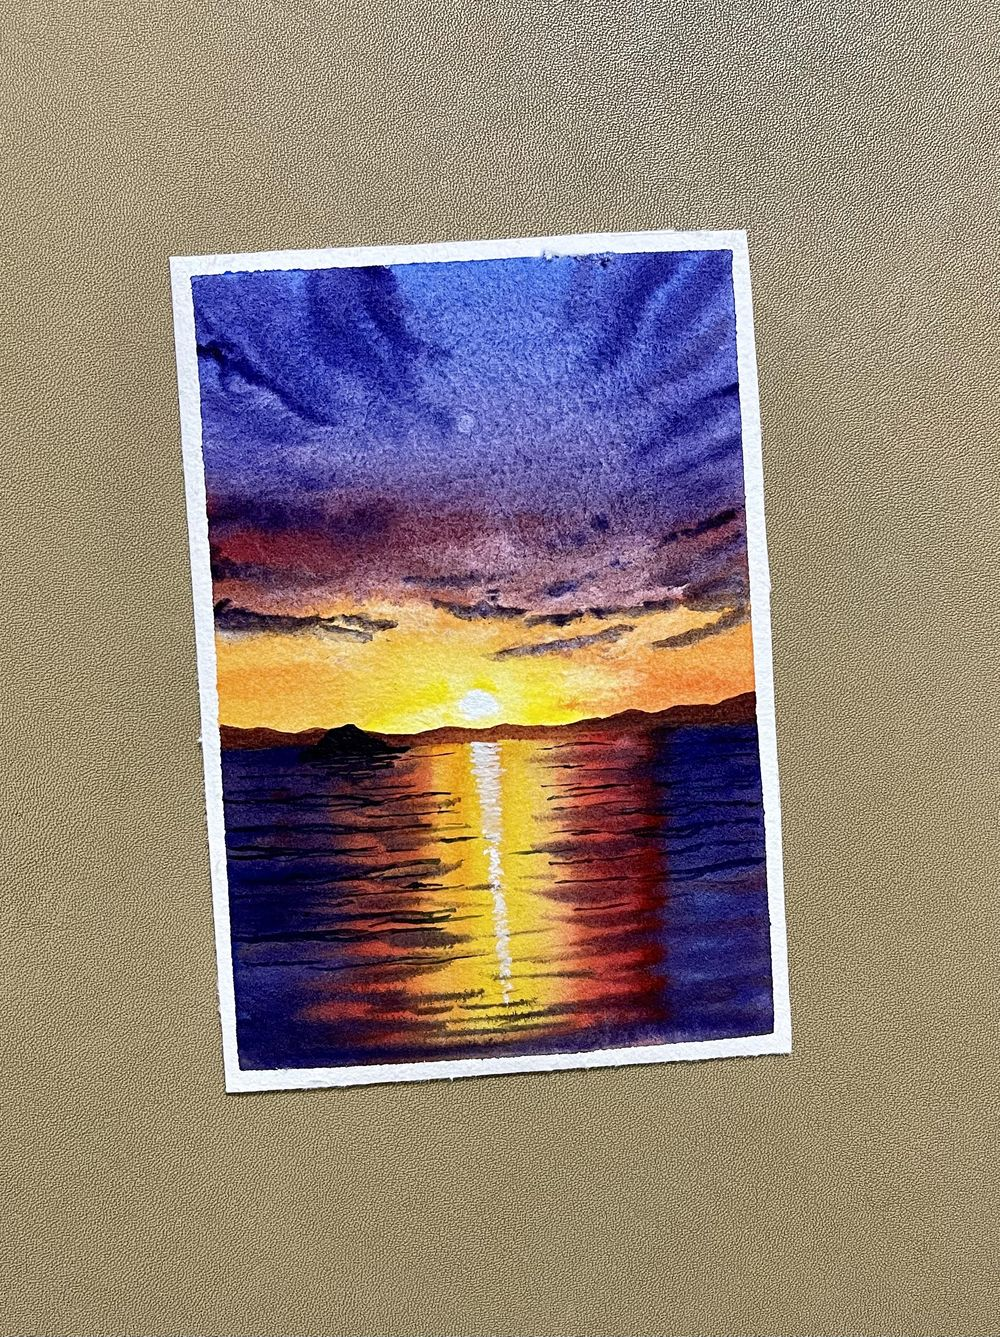 21 shades of sunset - image 20 - student project